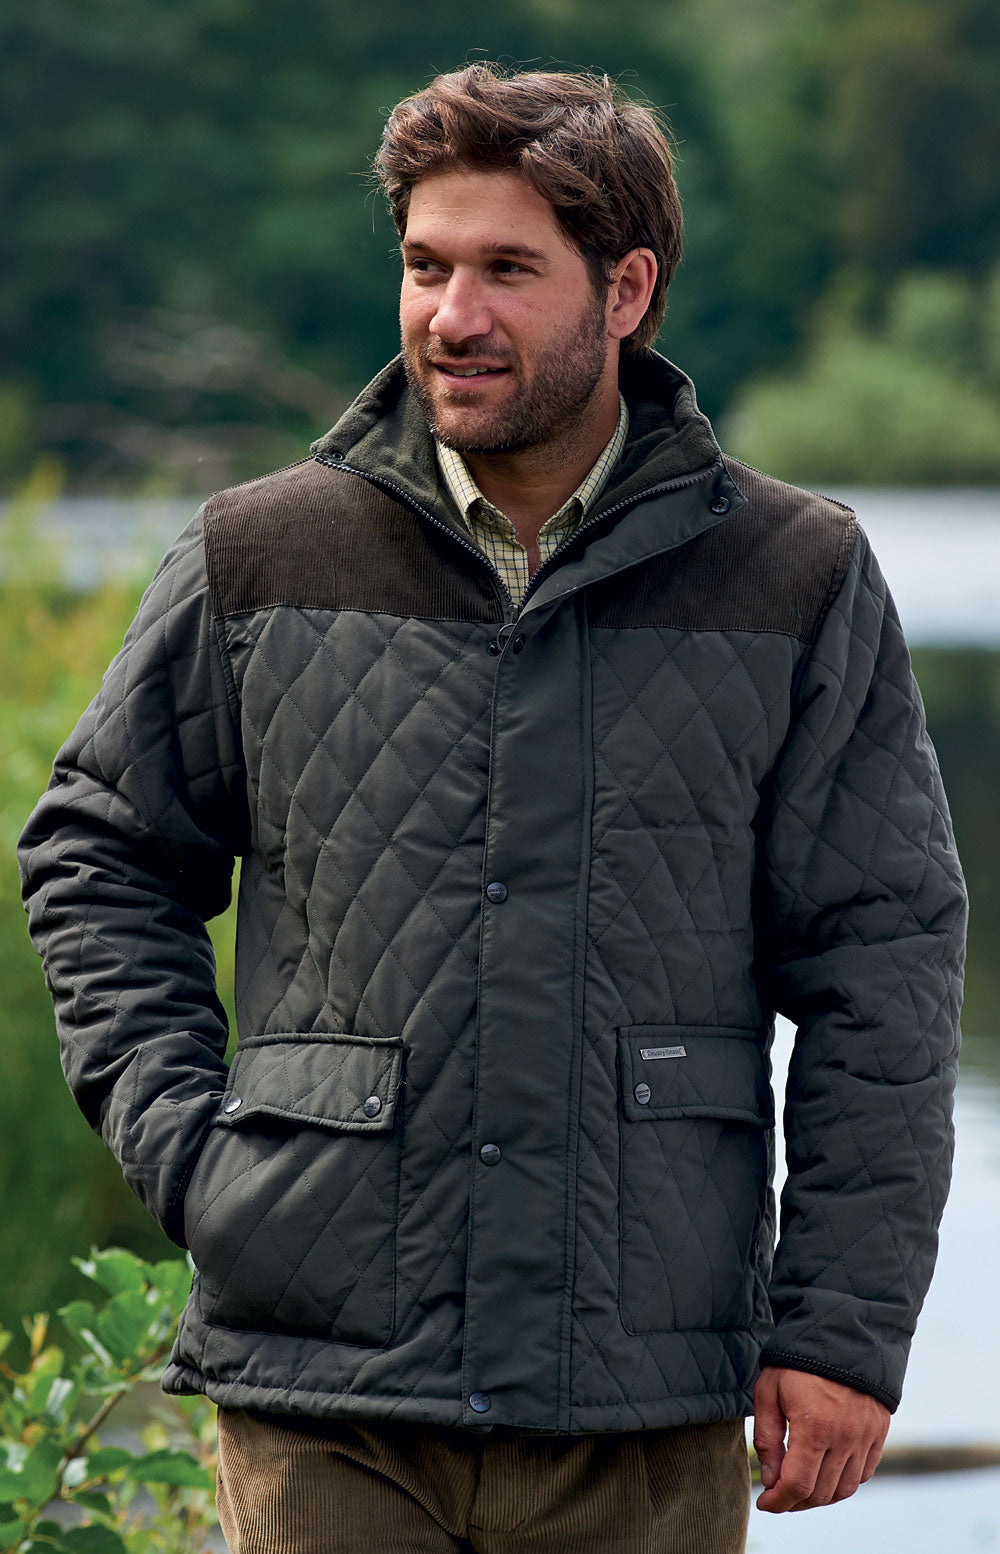 Find mens quilted jackets uk at ShopStyle. Shop the latest collection of mens quilted jackets uk from the most popular stores - all in one place.